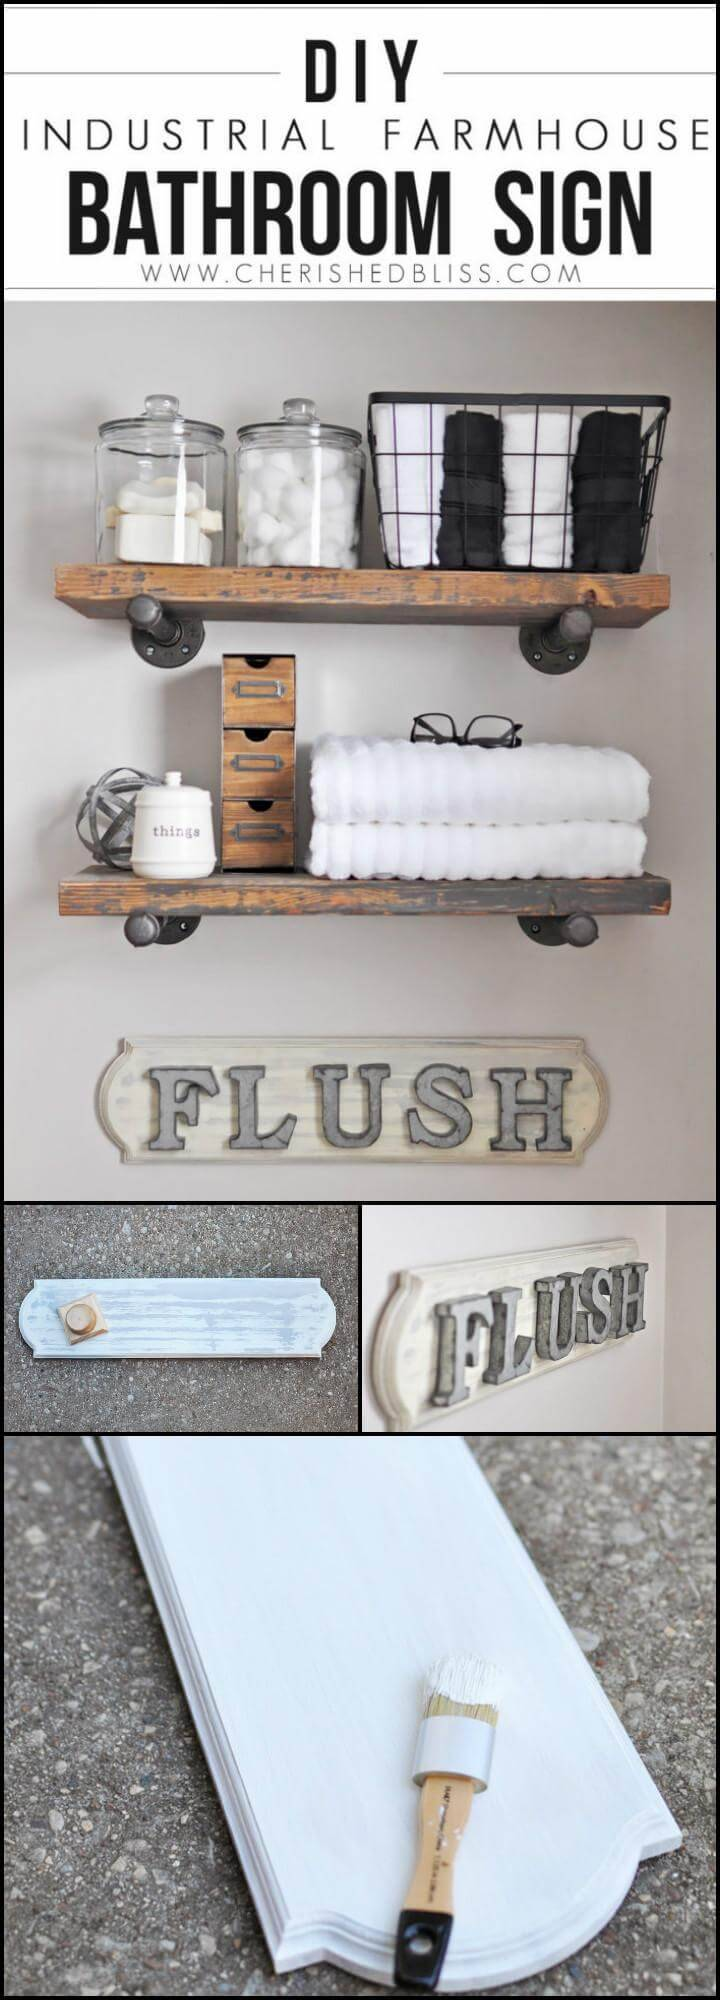 easy handmade industrial farmhouse bathroom sign